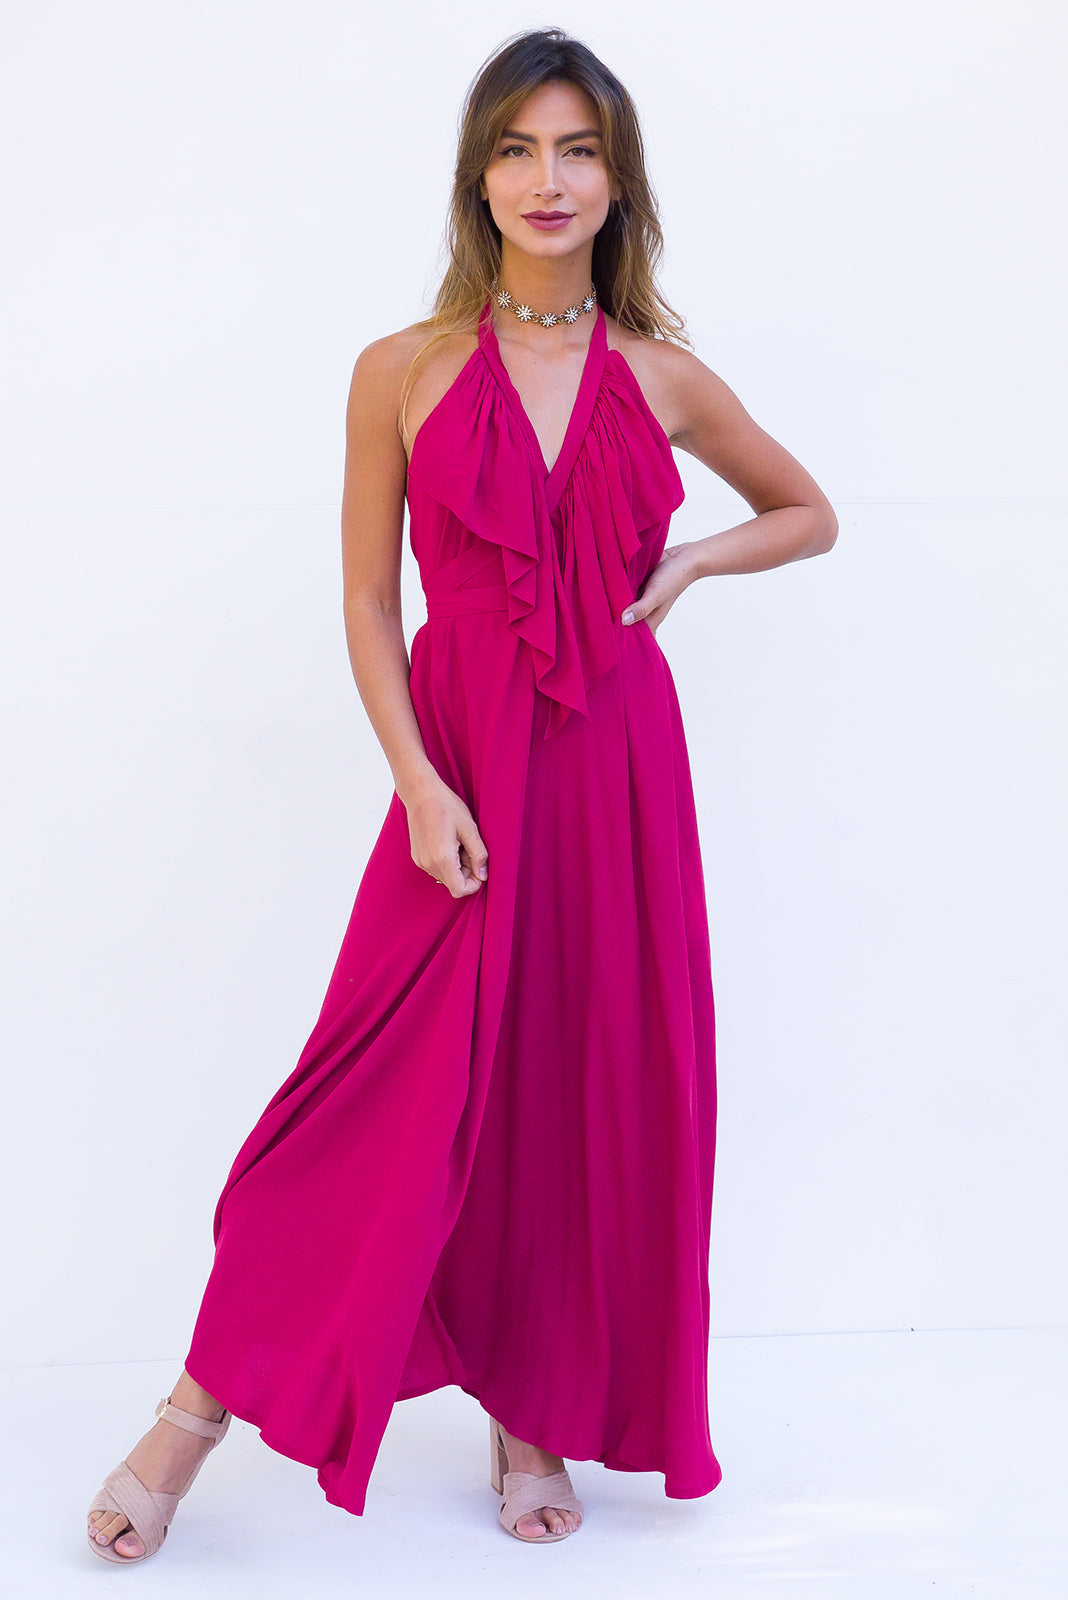 Belle Starr Maxi Dress Backless Halter formal dress in rich Garnet Red